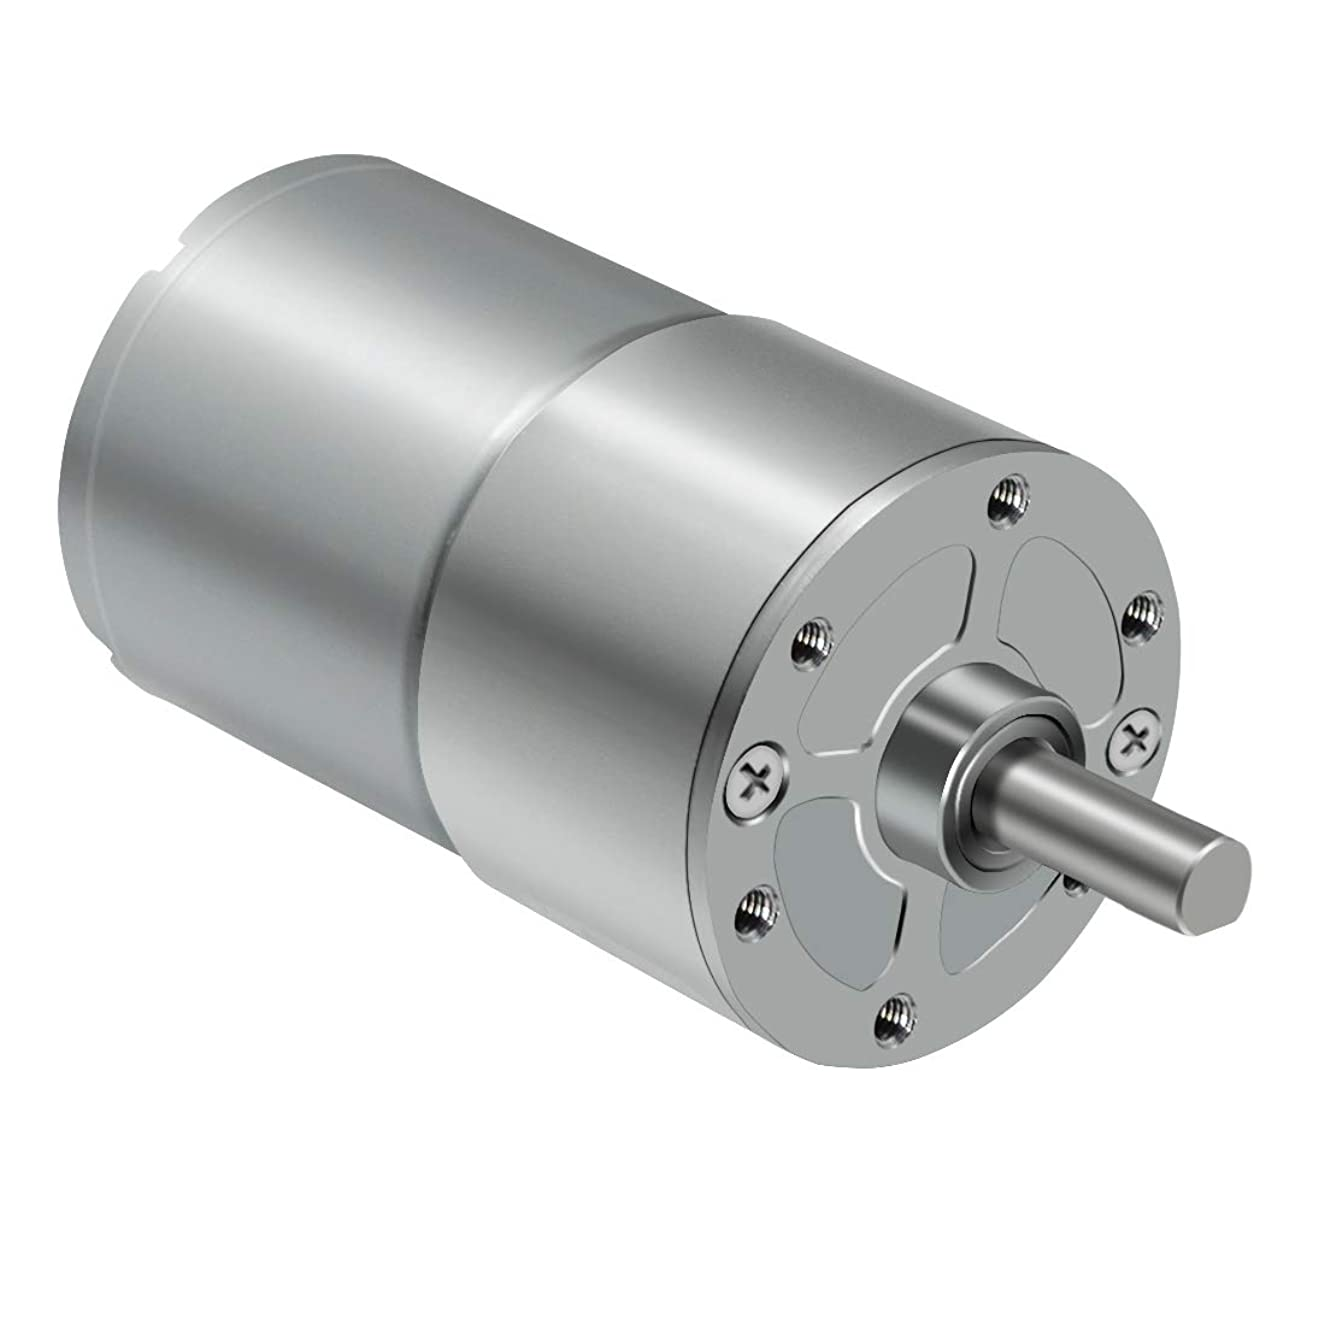 LMioEtool DC Electric Gear Motor, High Torque Reversible Mini Speed Reduction Geared Motor, with Metal Reducer Gearbox - Centric Output Shaft 37mm Diameter(12V/200RPM)